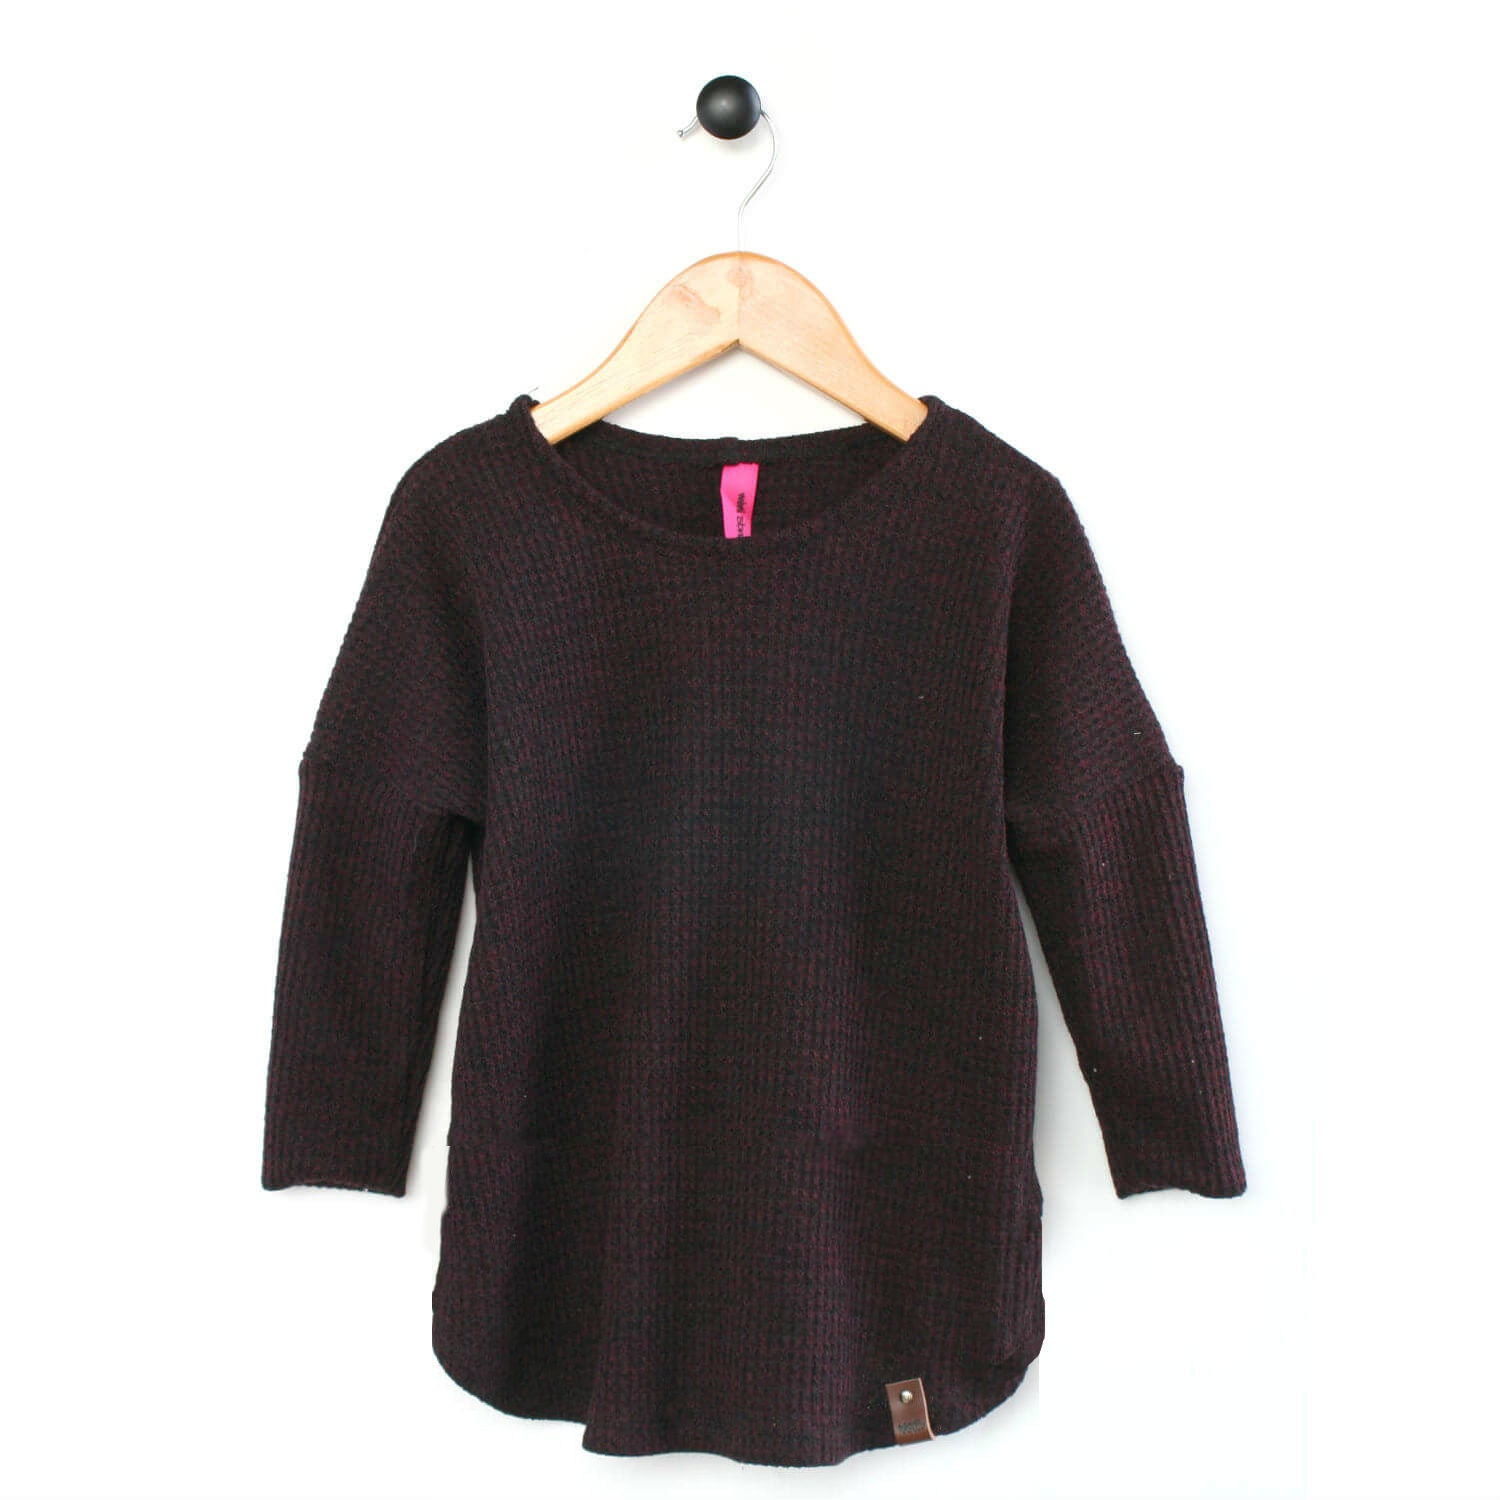 Maisie Womans Sweater - Burgundy